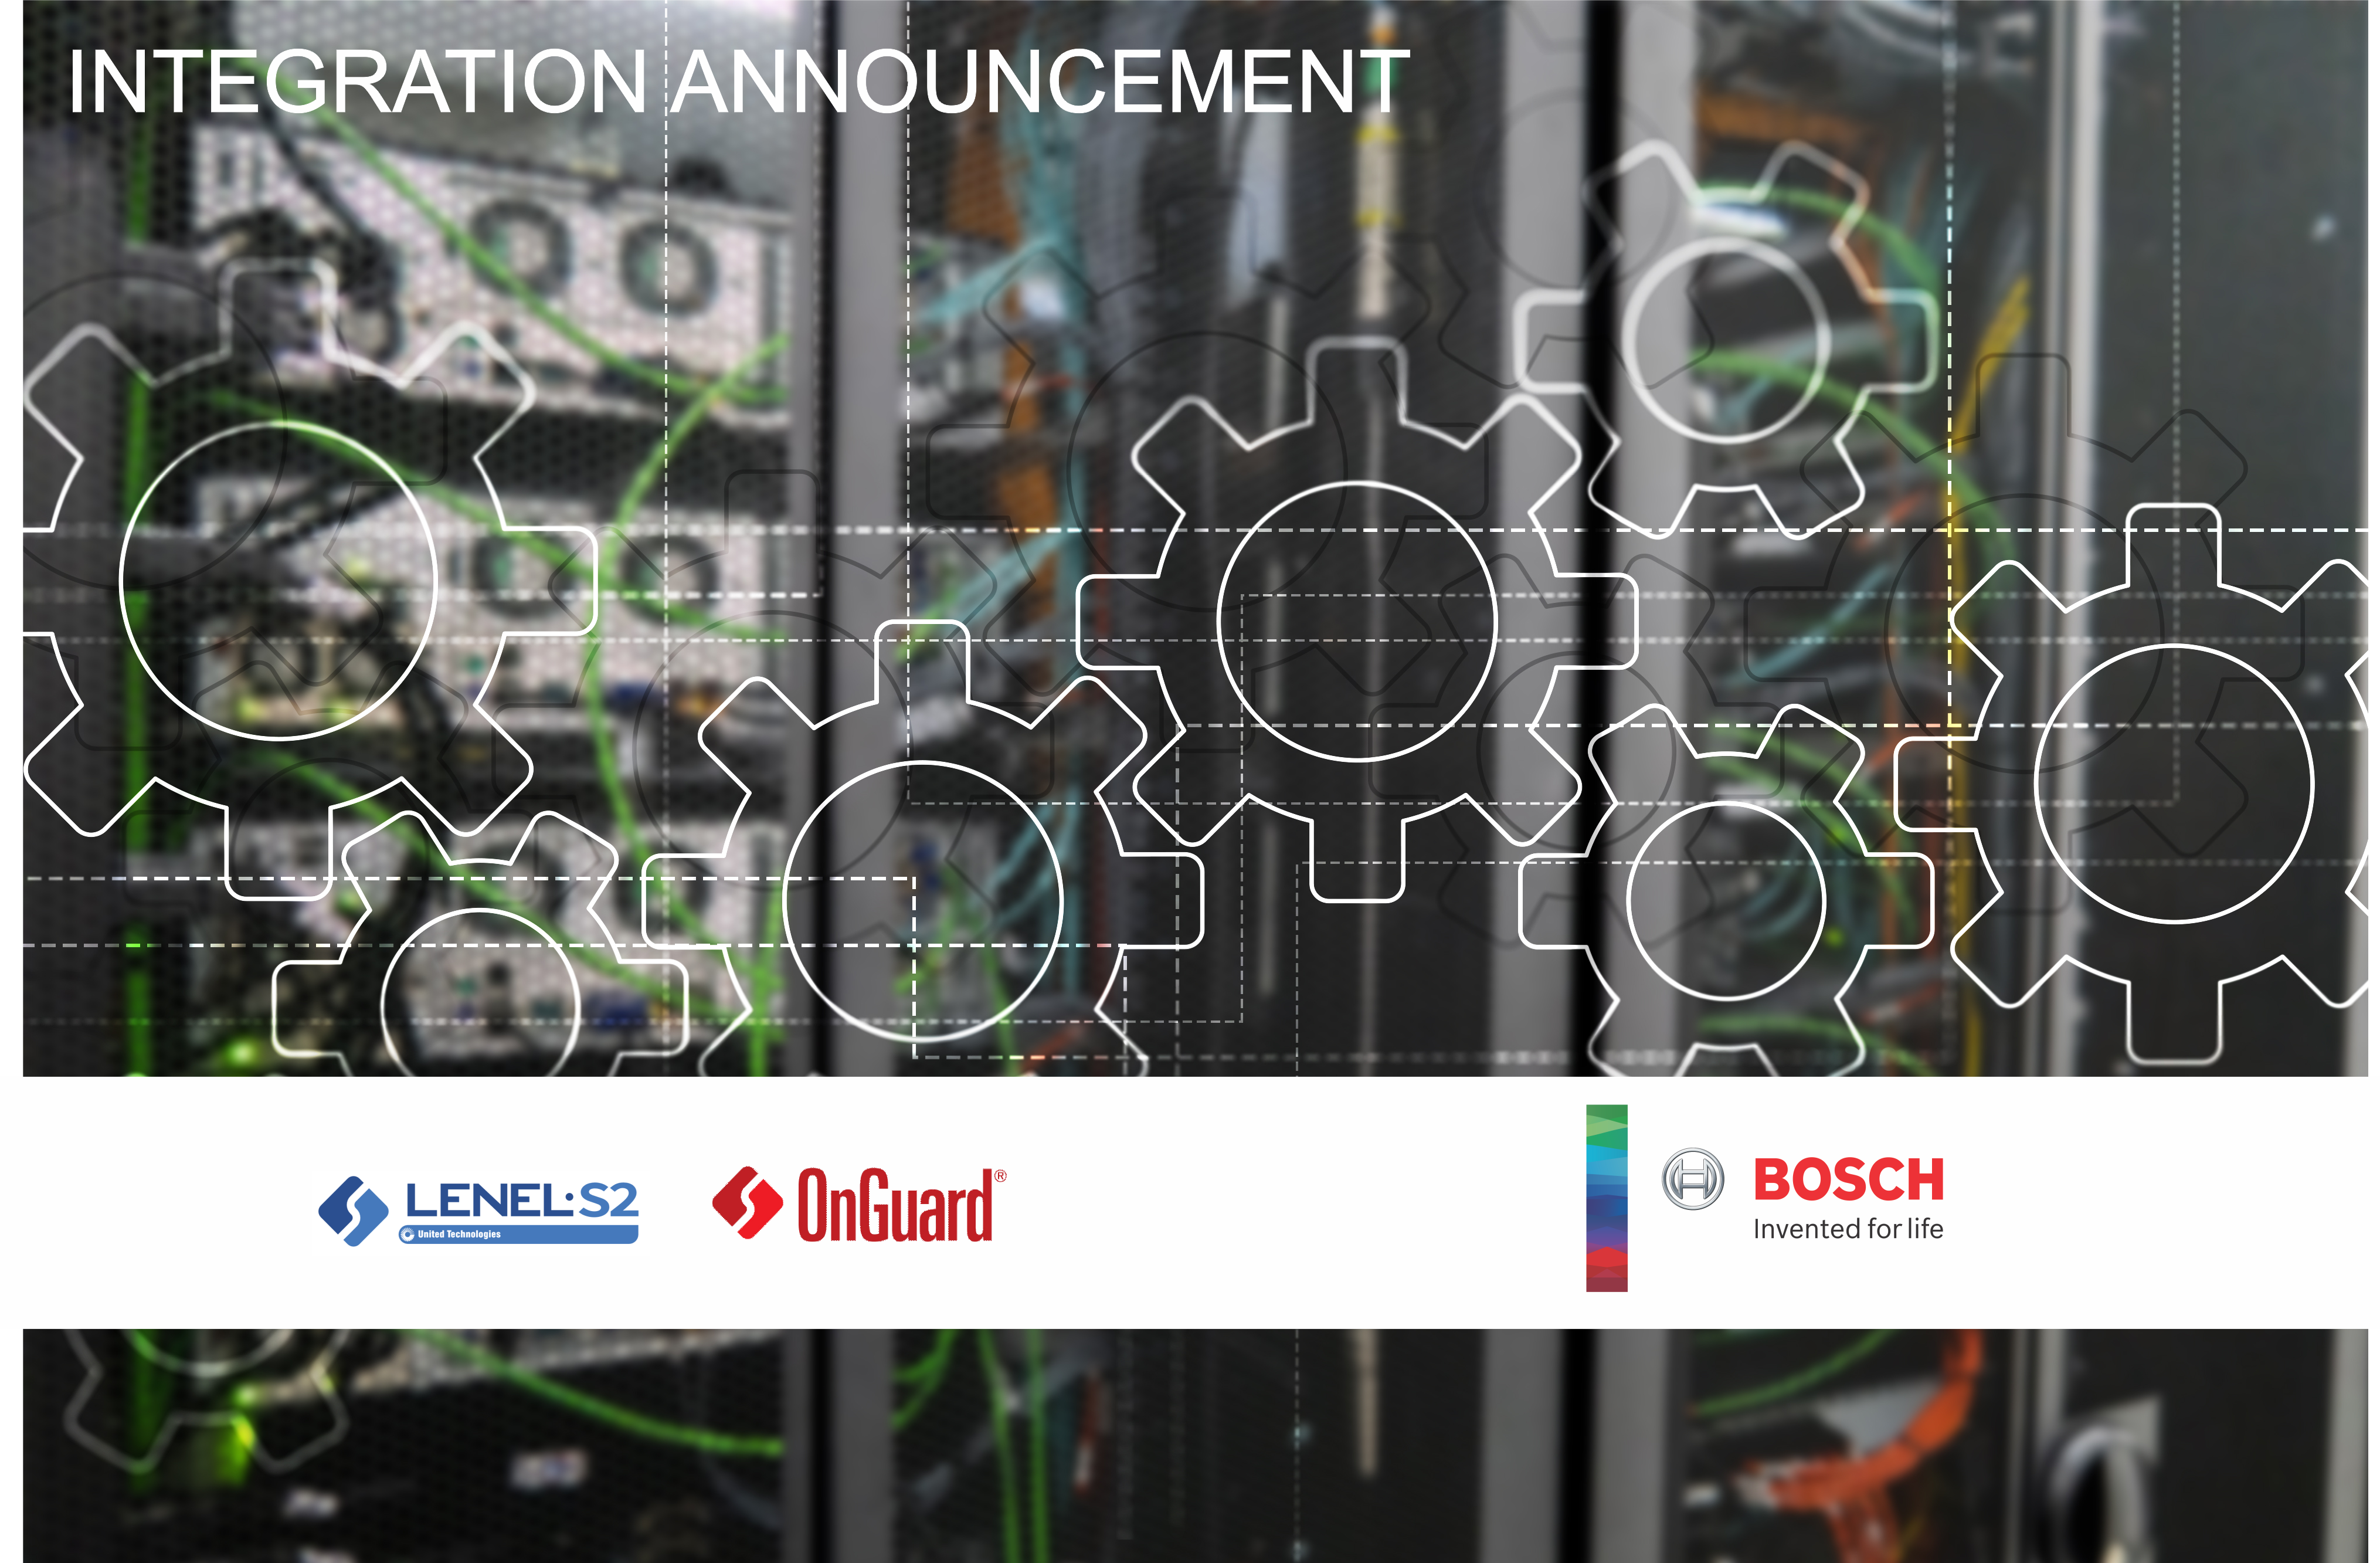 Lenel OnGuard and Bosch Integration Announcement image